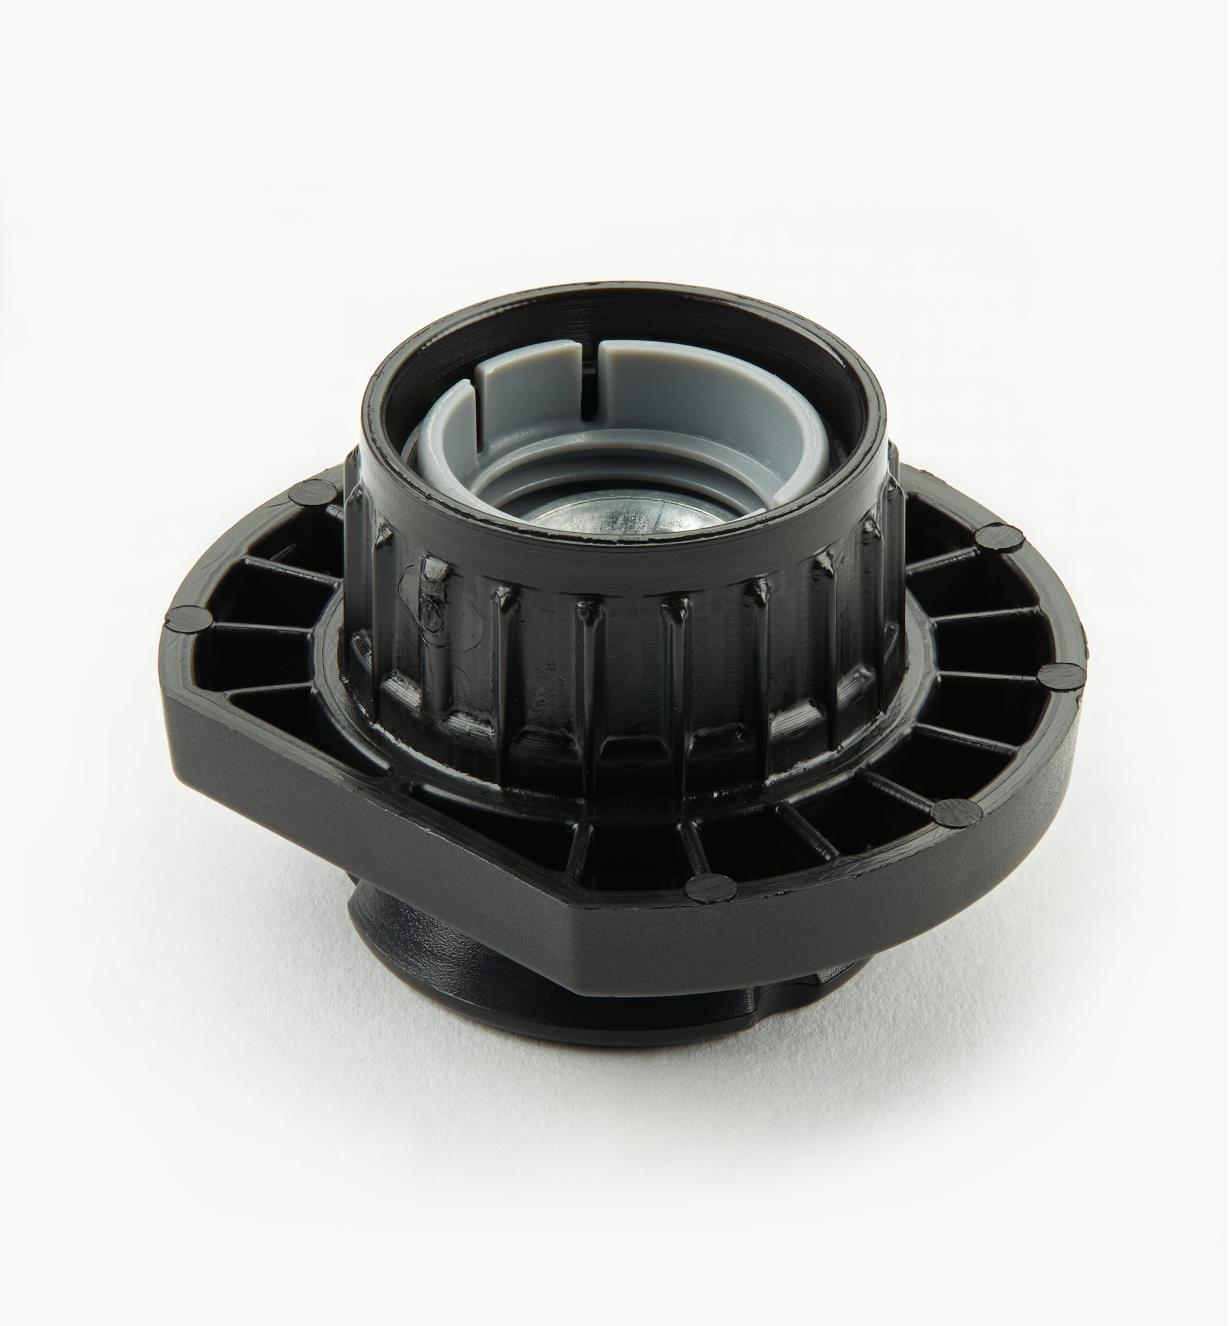 01S1901 - 17mm Bottom-Mount Top-Adjustable Leveller, each